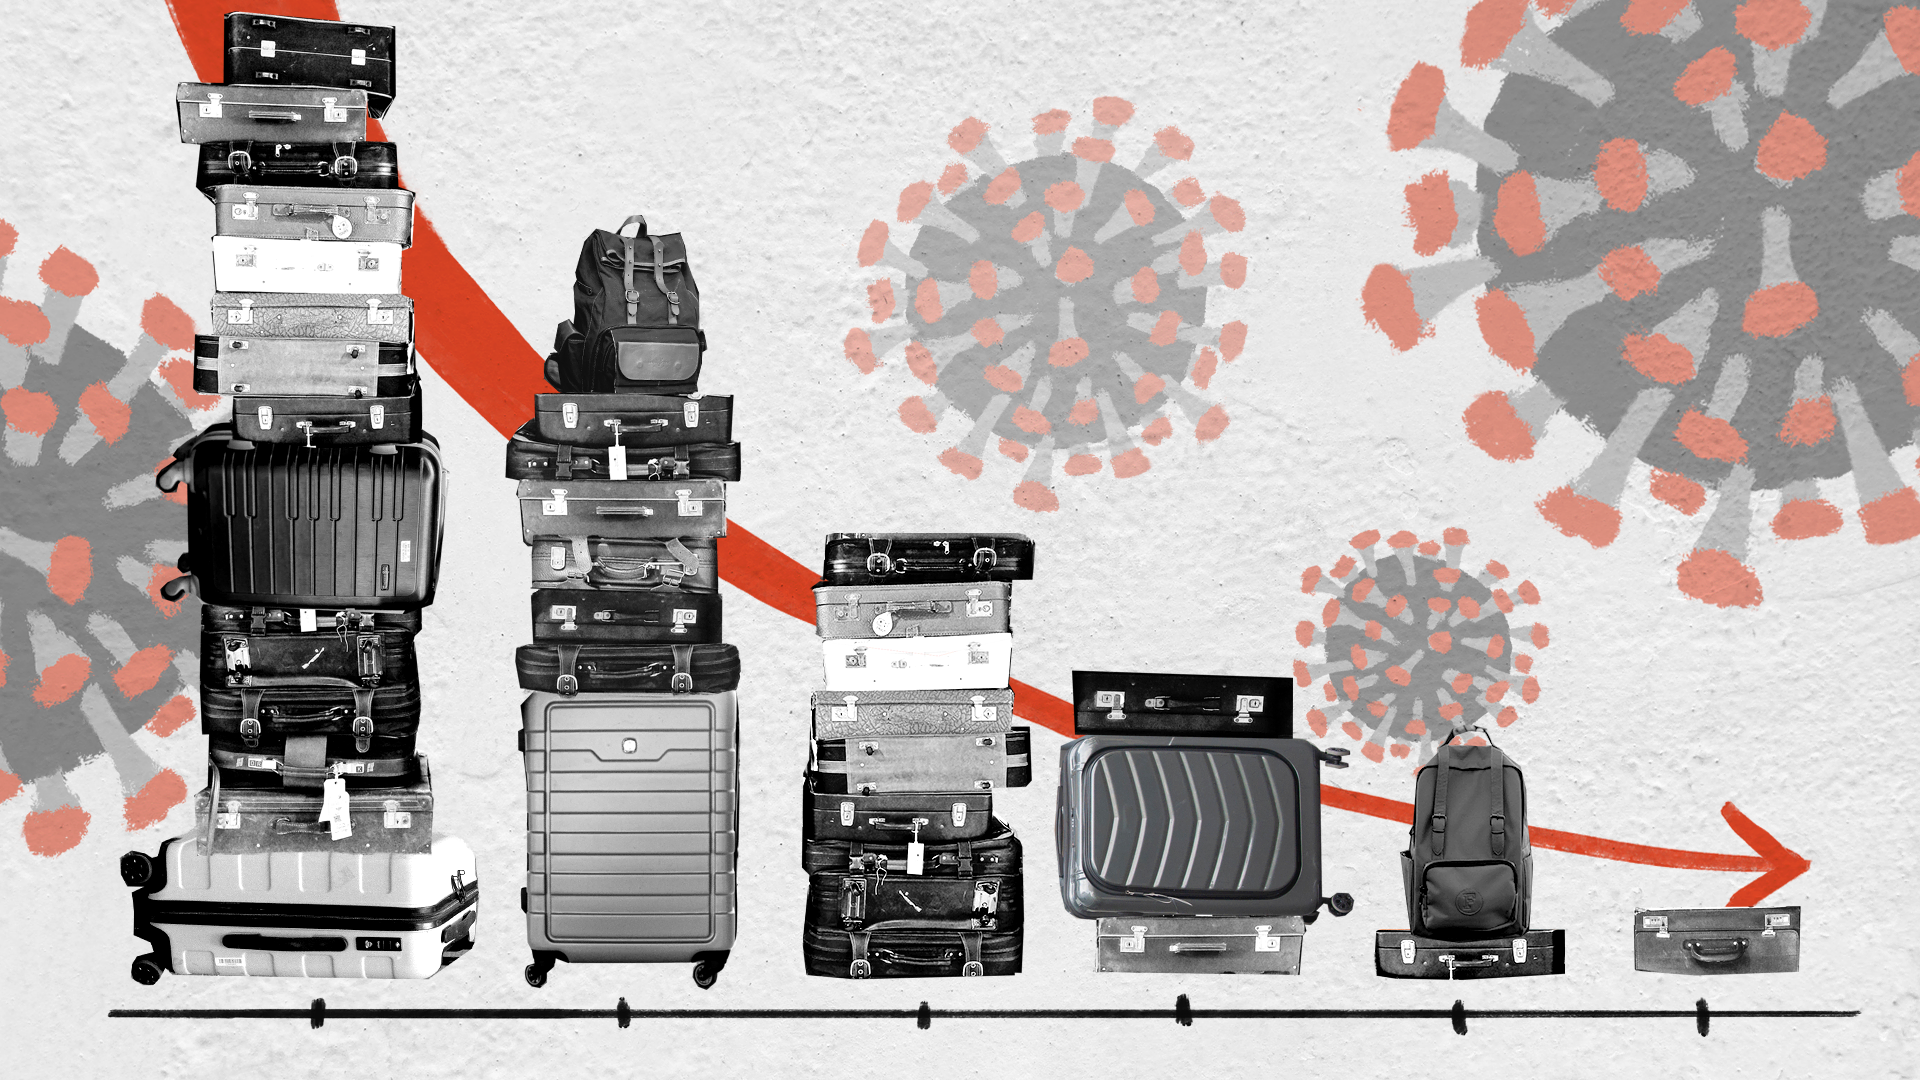 Illustration of suitcases over a graph with a downward trend